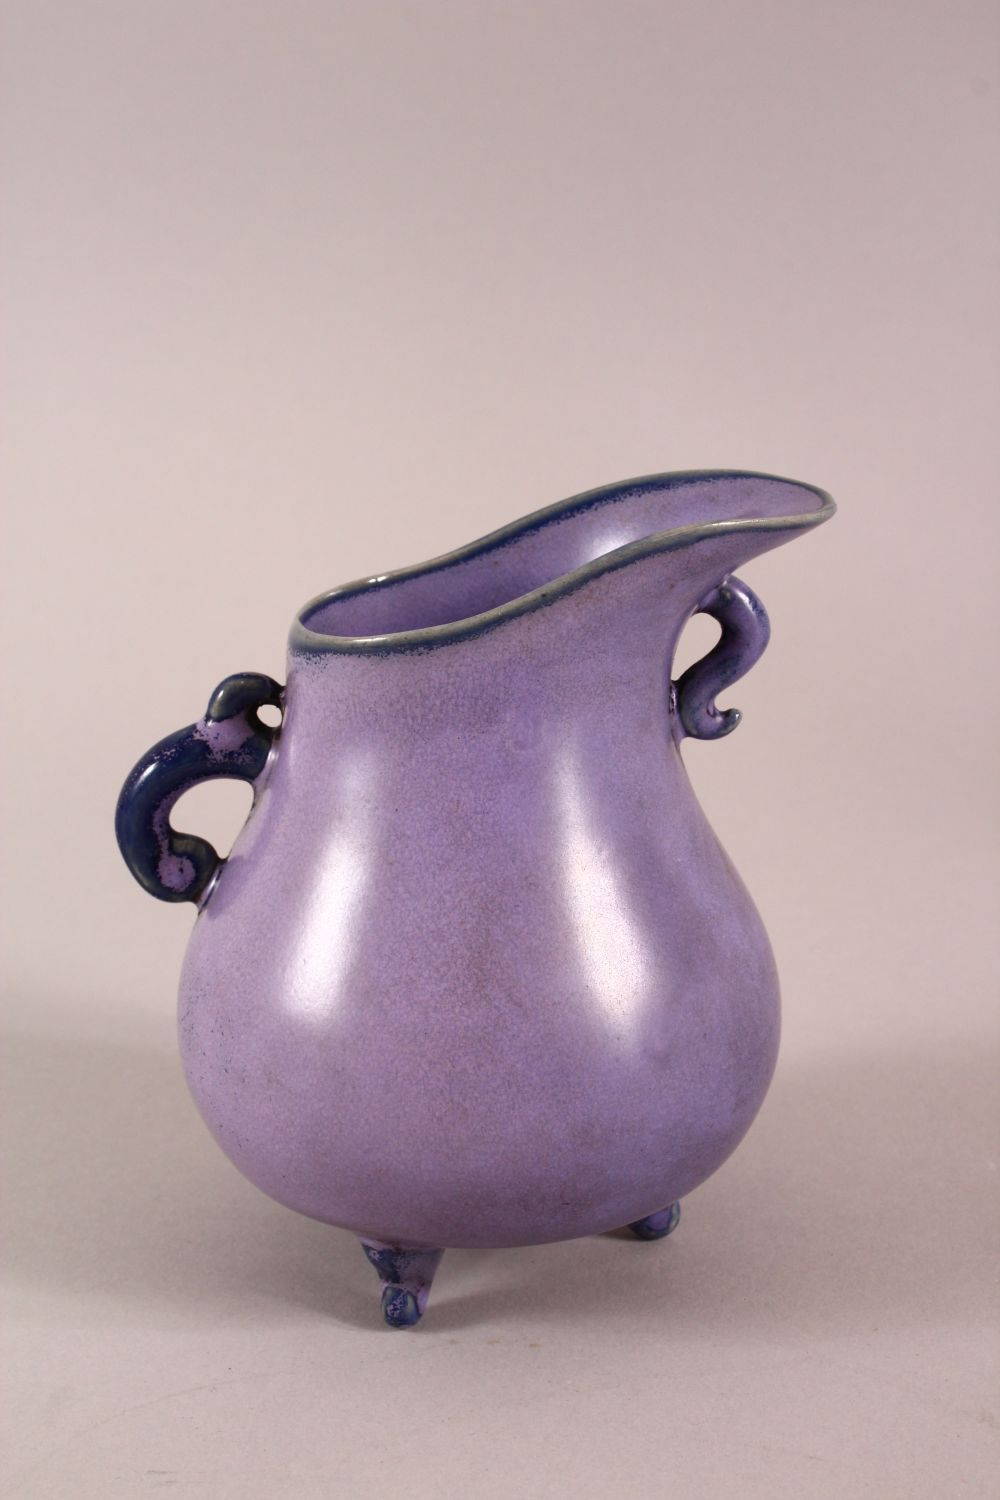 A CHINESE SONG STYLE AUBERGINE GLAZE WINE POT, with tripod feet, the base with a mark, 13cm high. - Image 3 of 6